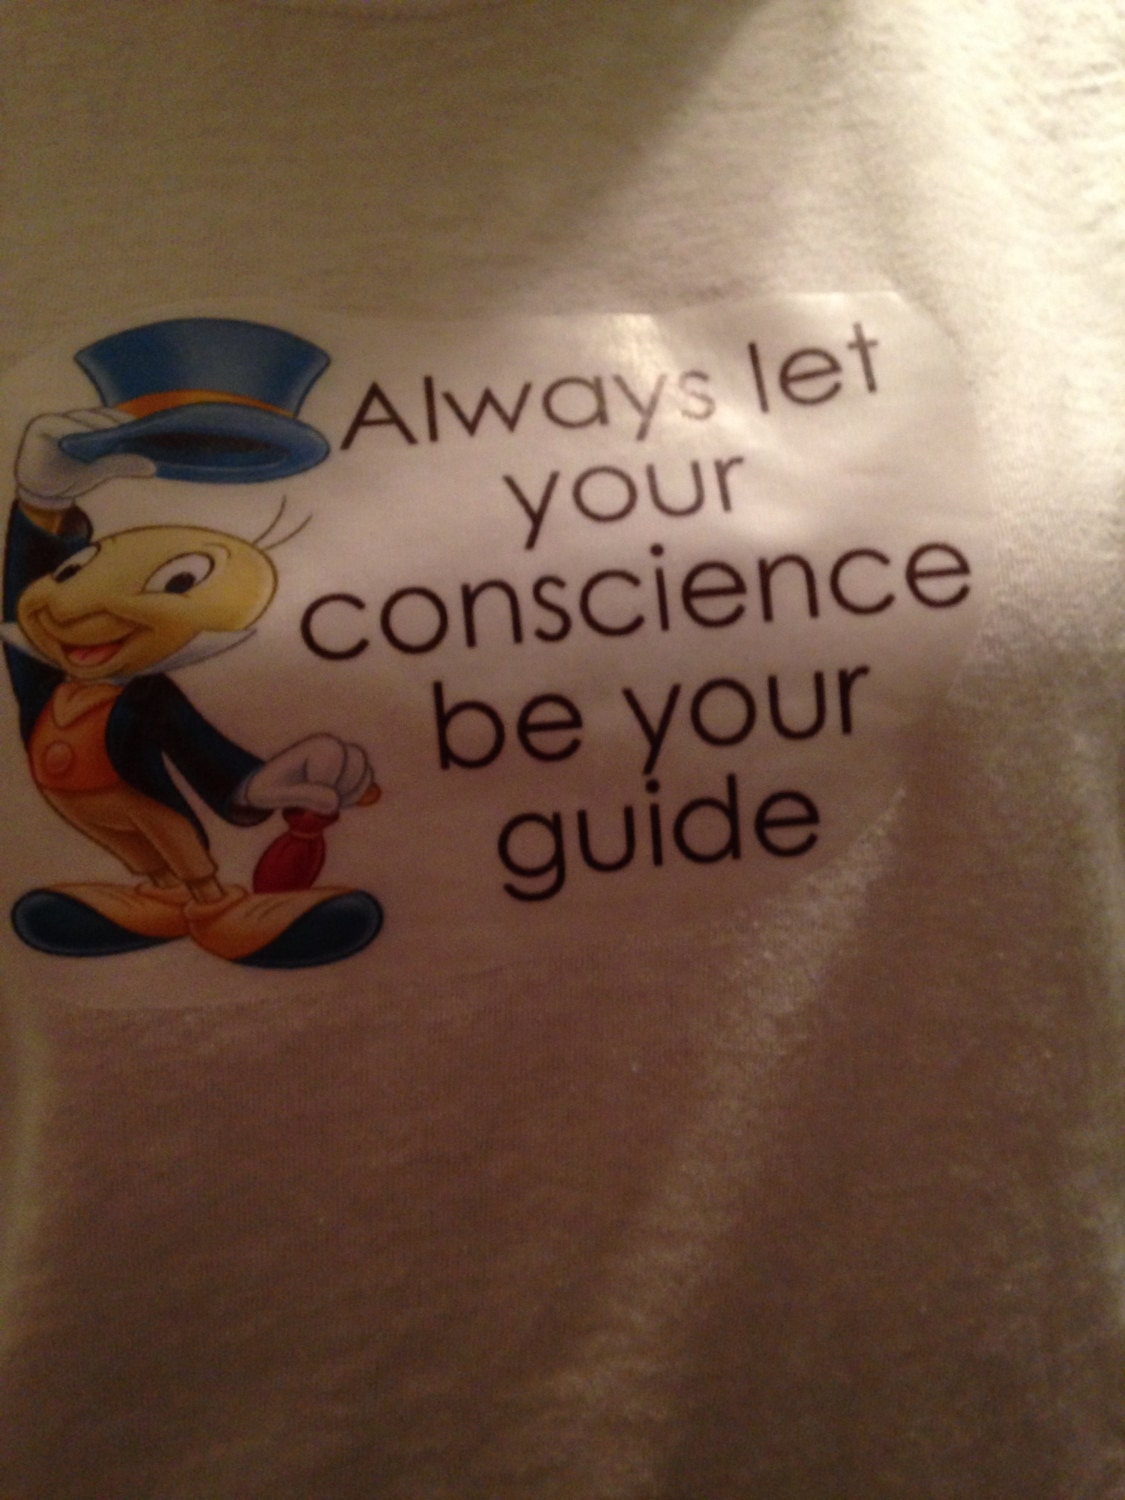 always let your conscience be your guid